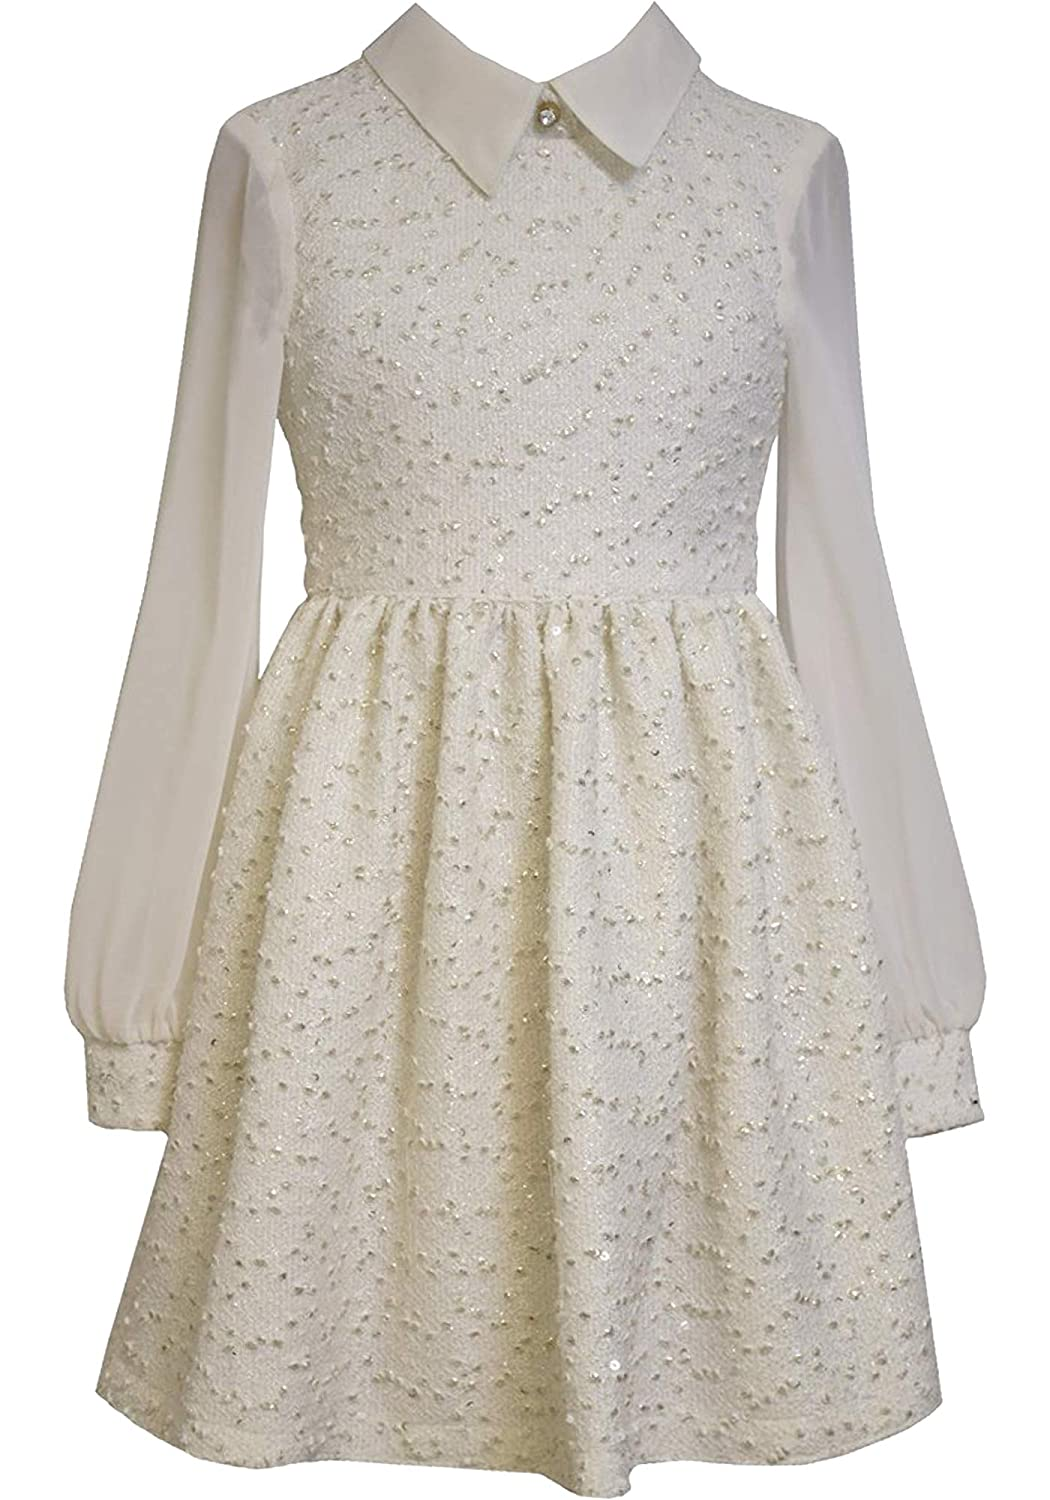 Vintage Style Children's Clothing: Girls, Boys, Baby, Toddler Little Girls 2T-6X Ivory/Gold Foil Knit Boucle Chiffon Sleeves Dress $42.99 AT vintagedancer.com